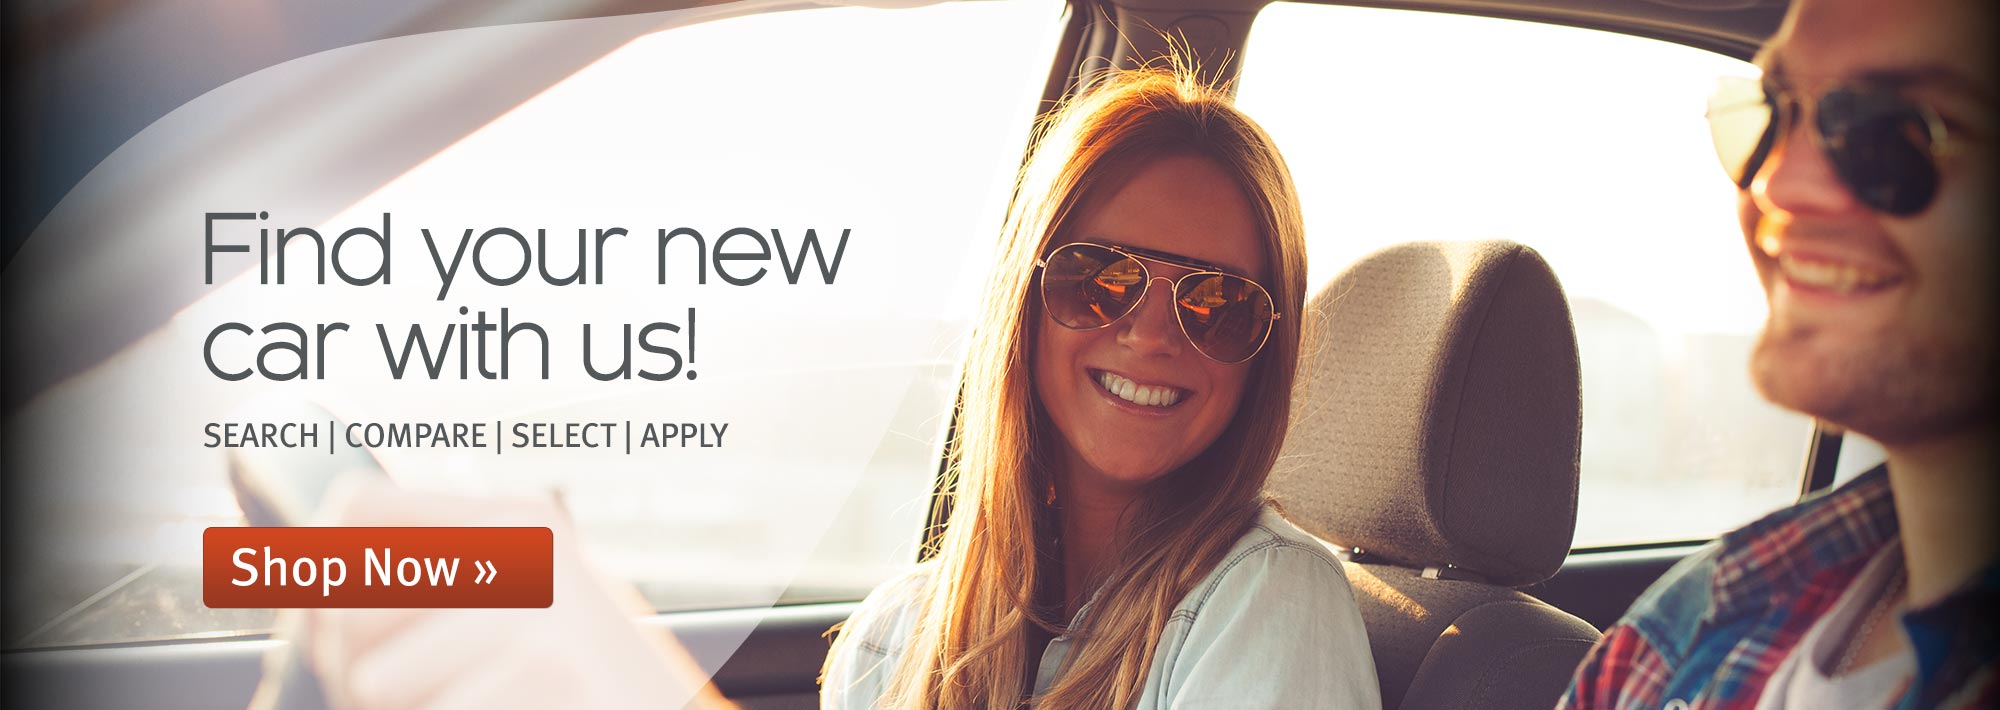 Find your new car with us! Search, compare, select and apply for your new vehicle.